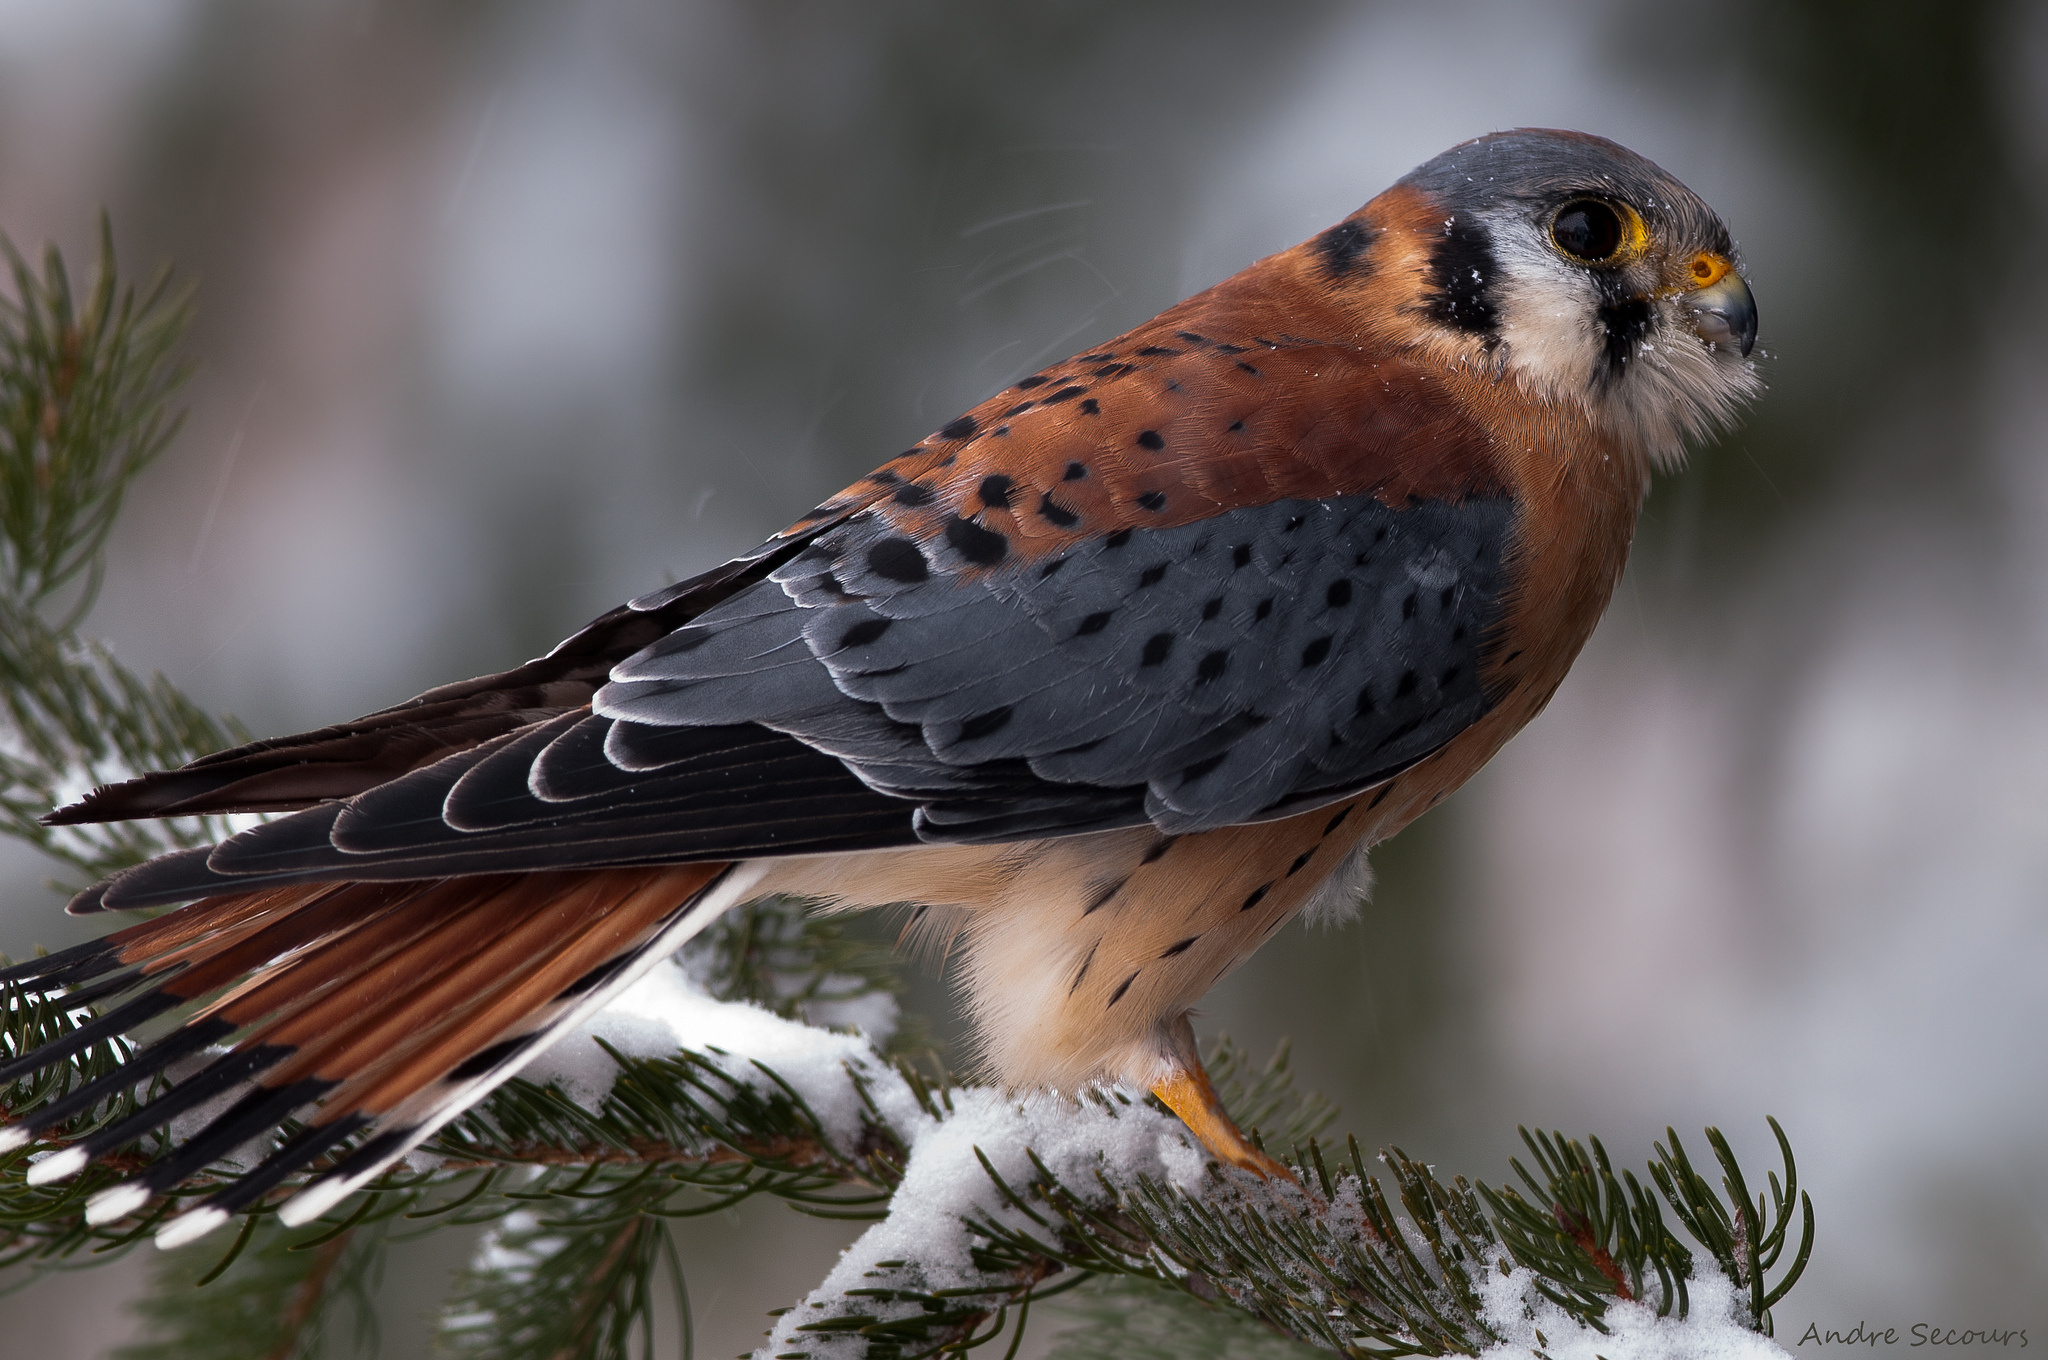 American kestrel hd wallpaper background image - Birds of prey wallpaper hd ...